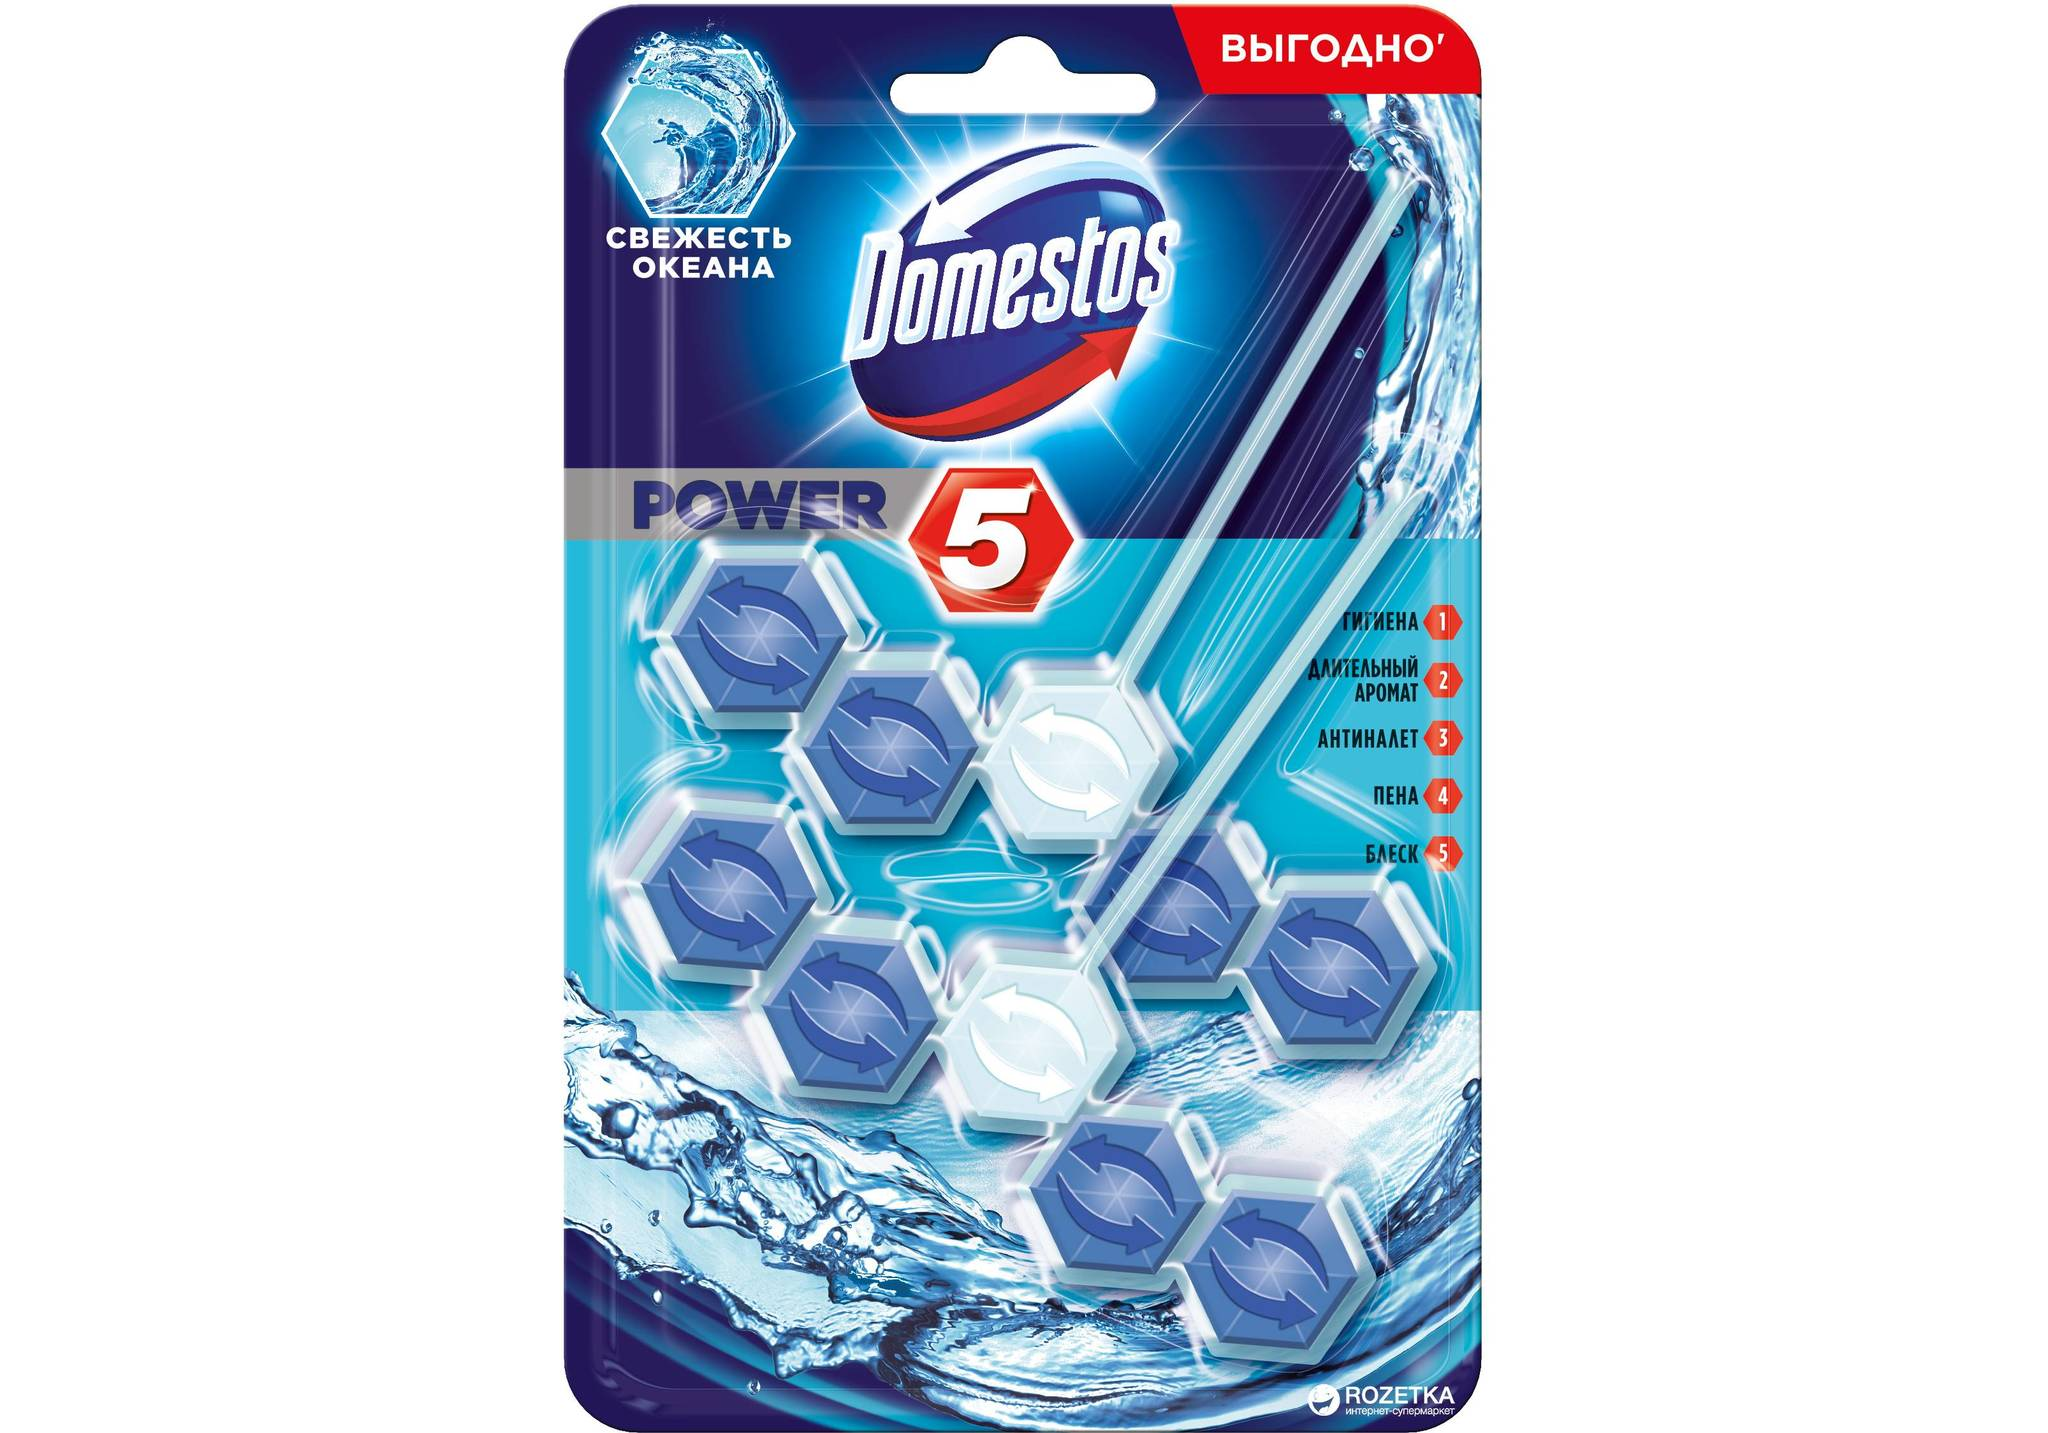 https://marco.kz/media/products/copy_domestos_8710447326039_5aa816831ce42_images_3531069631.jpg